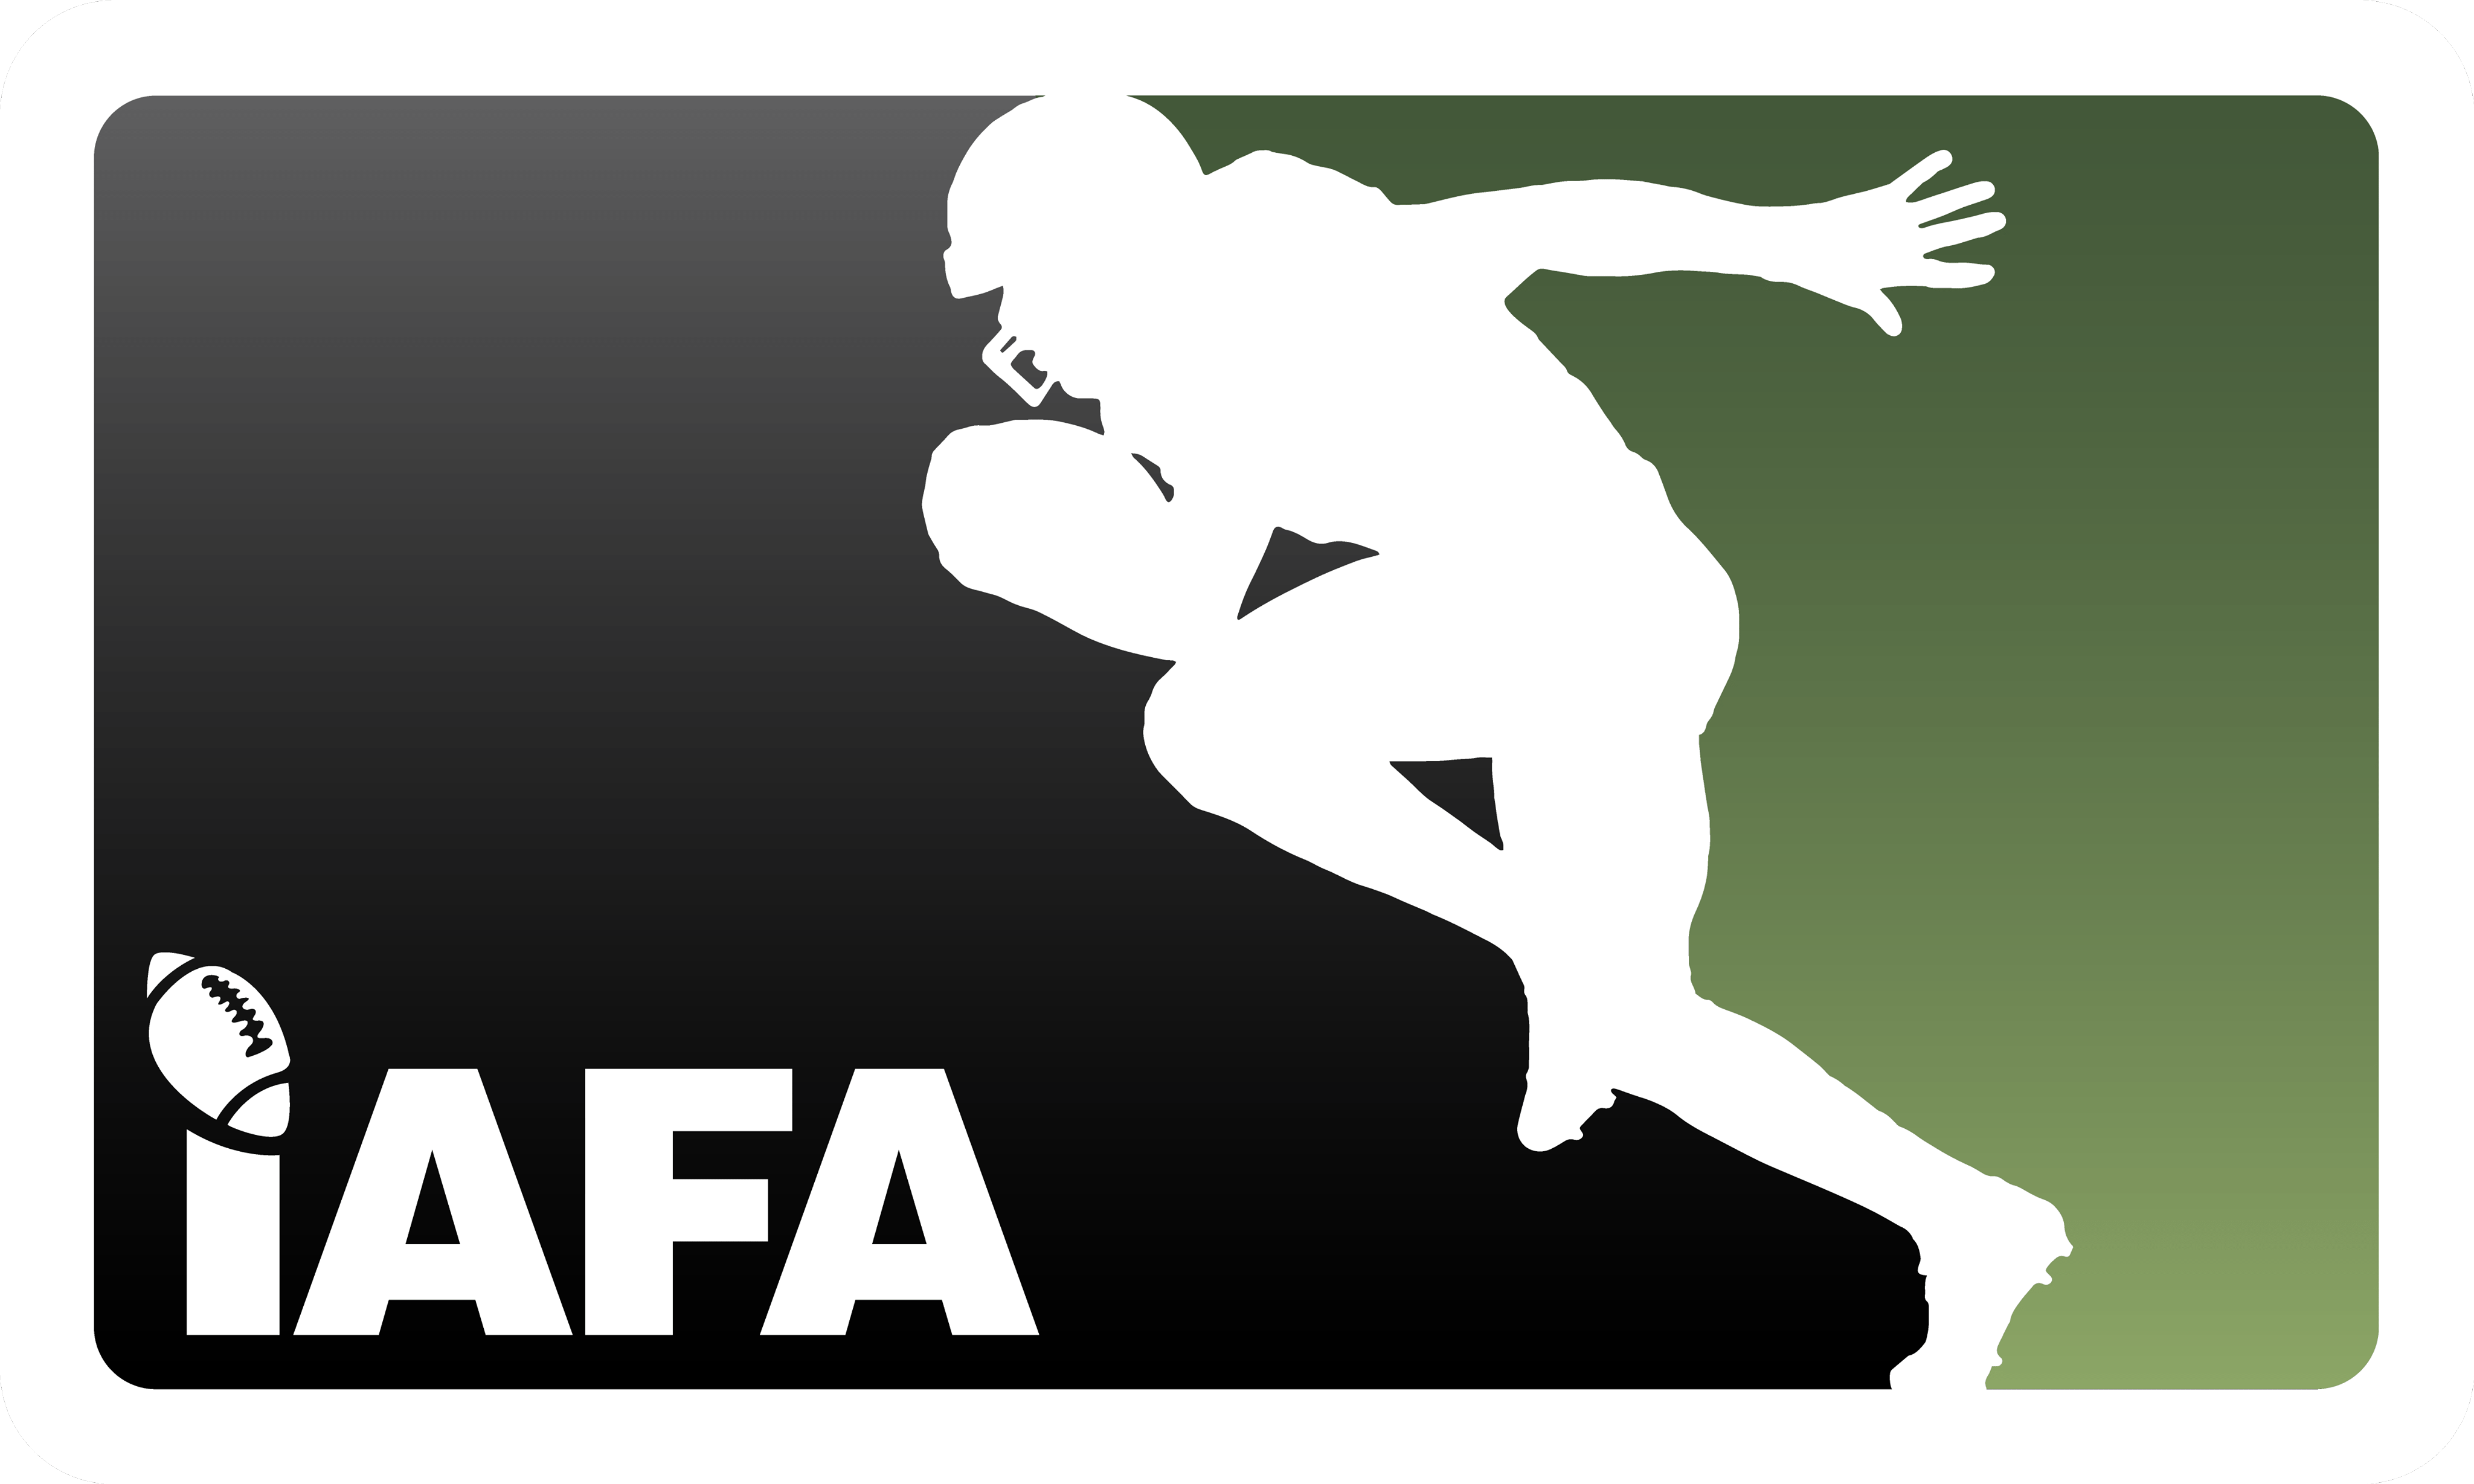 Irish American Football Association